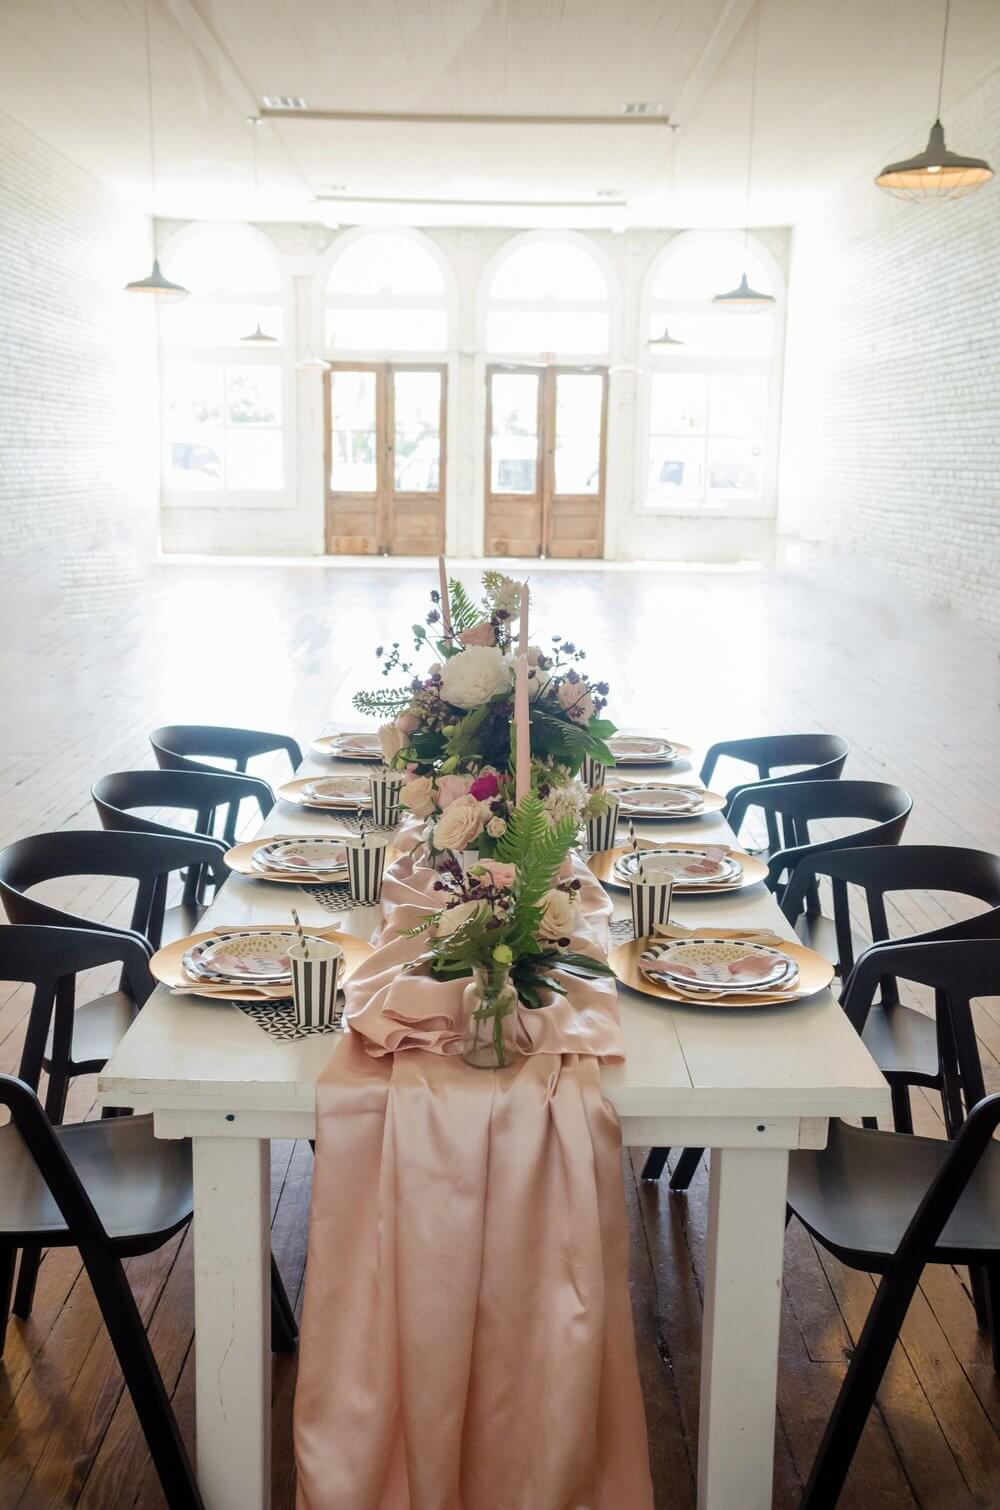 Beautiful tablescape with pink and black accents, perfect for a bridal shower